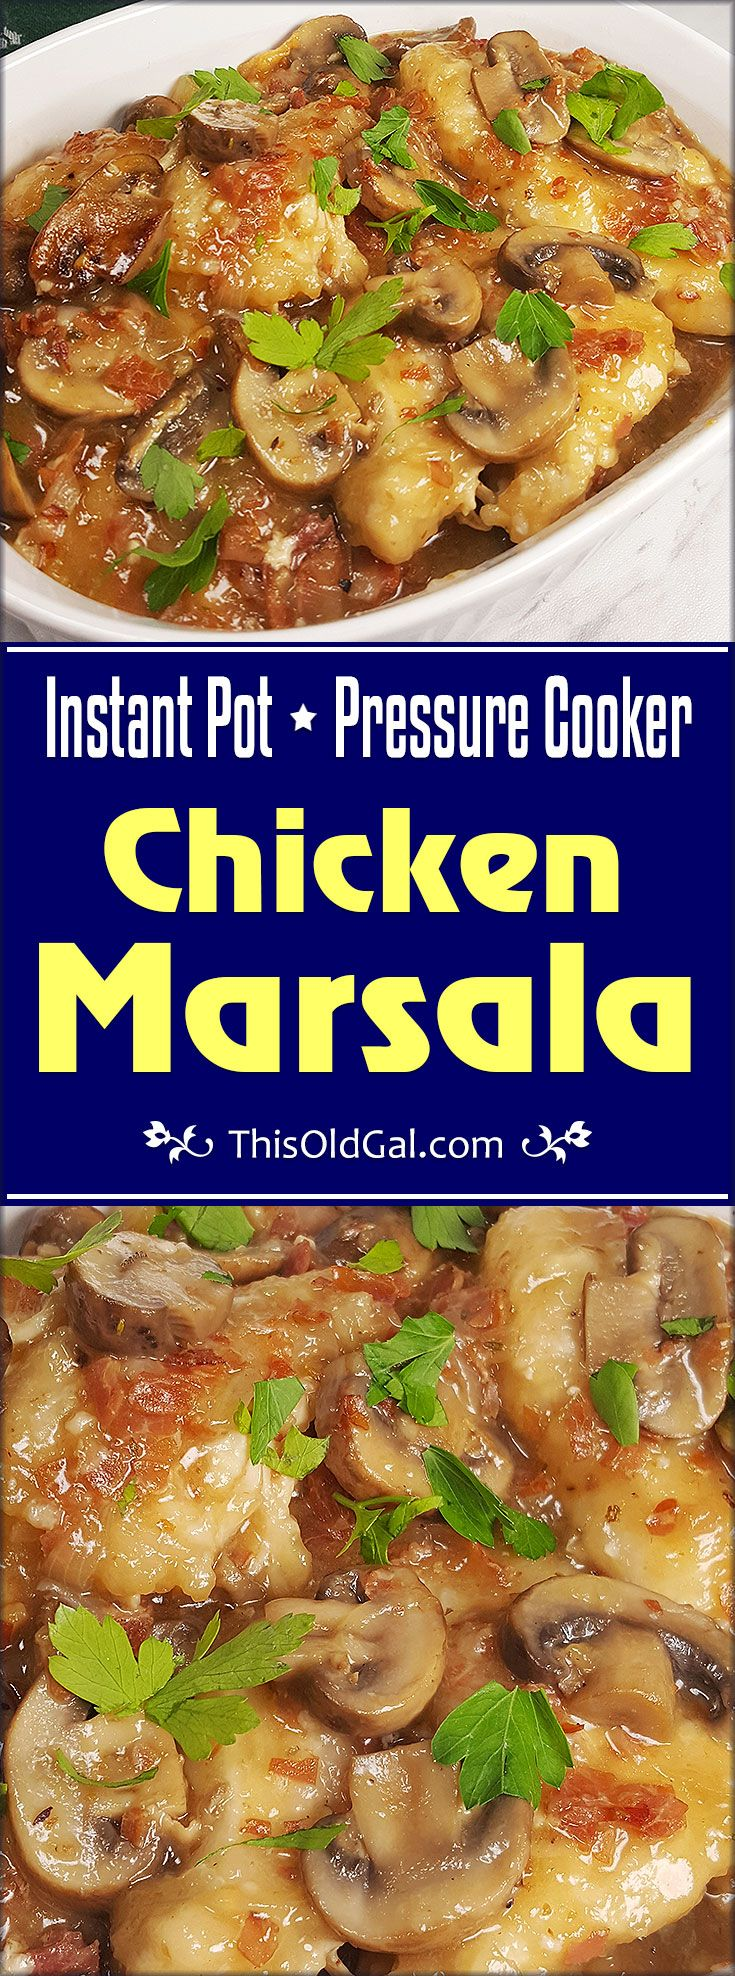 Instant Pot Italian Chicken Marsala is super easy to make. The Prosciutto and Marsala sauteed Mushroom and Onions, soars this meal to another level. via @thisoldgalcooks